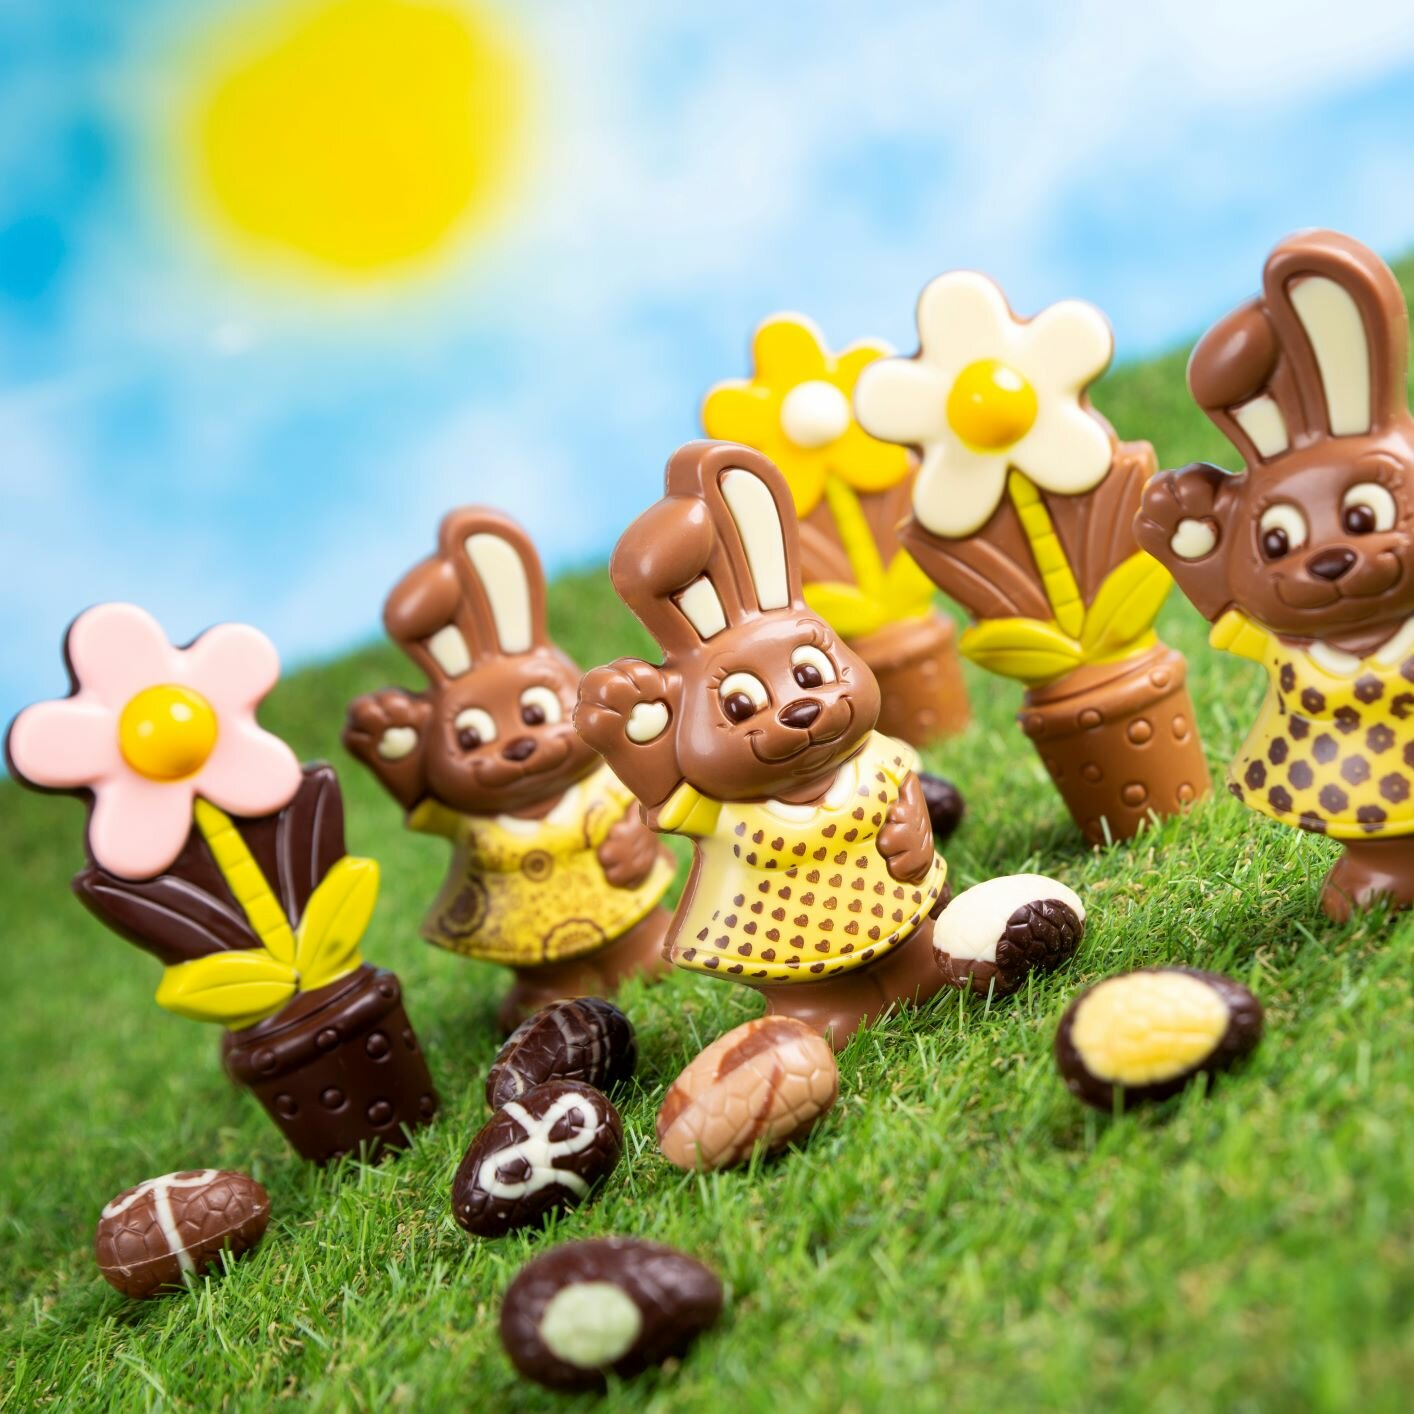 Unique Easter chocolate figures